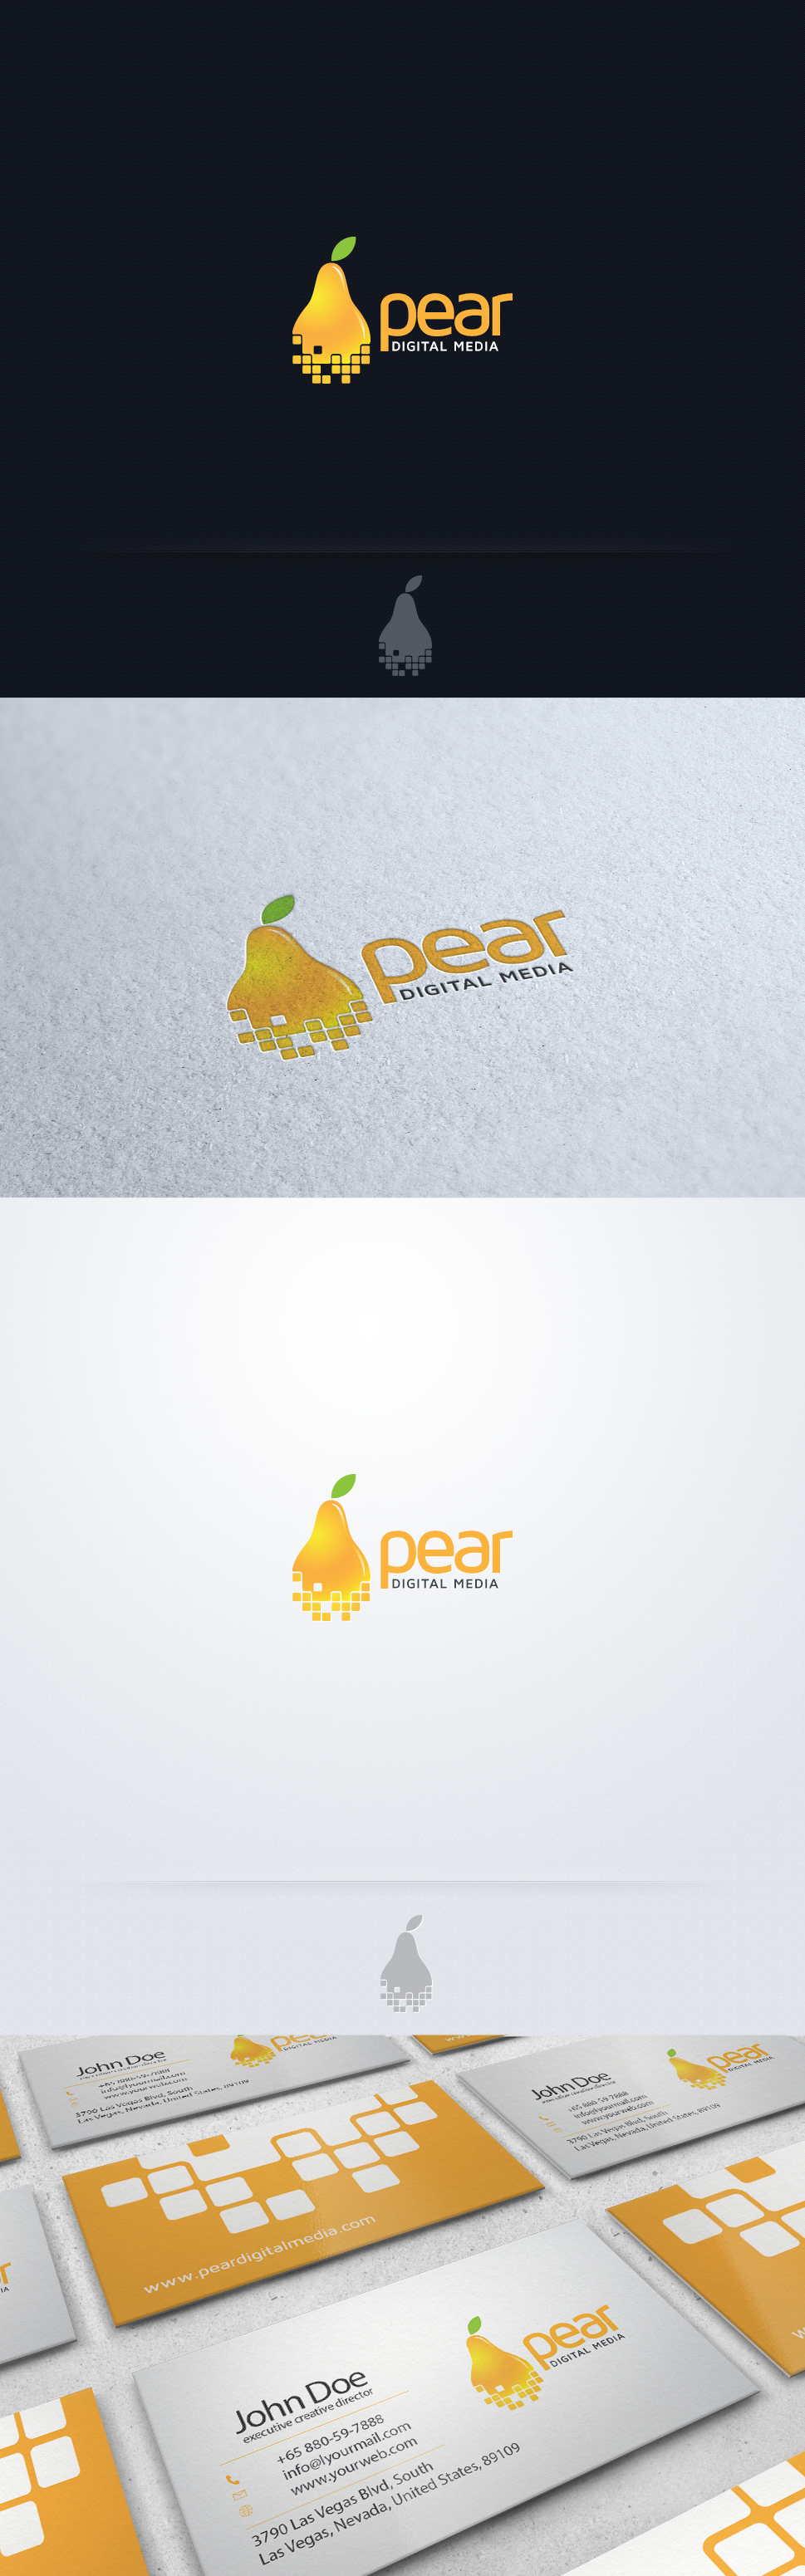 Help Pear Digital Media with a new logo and business card